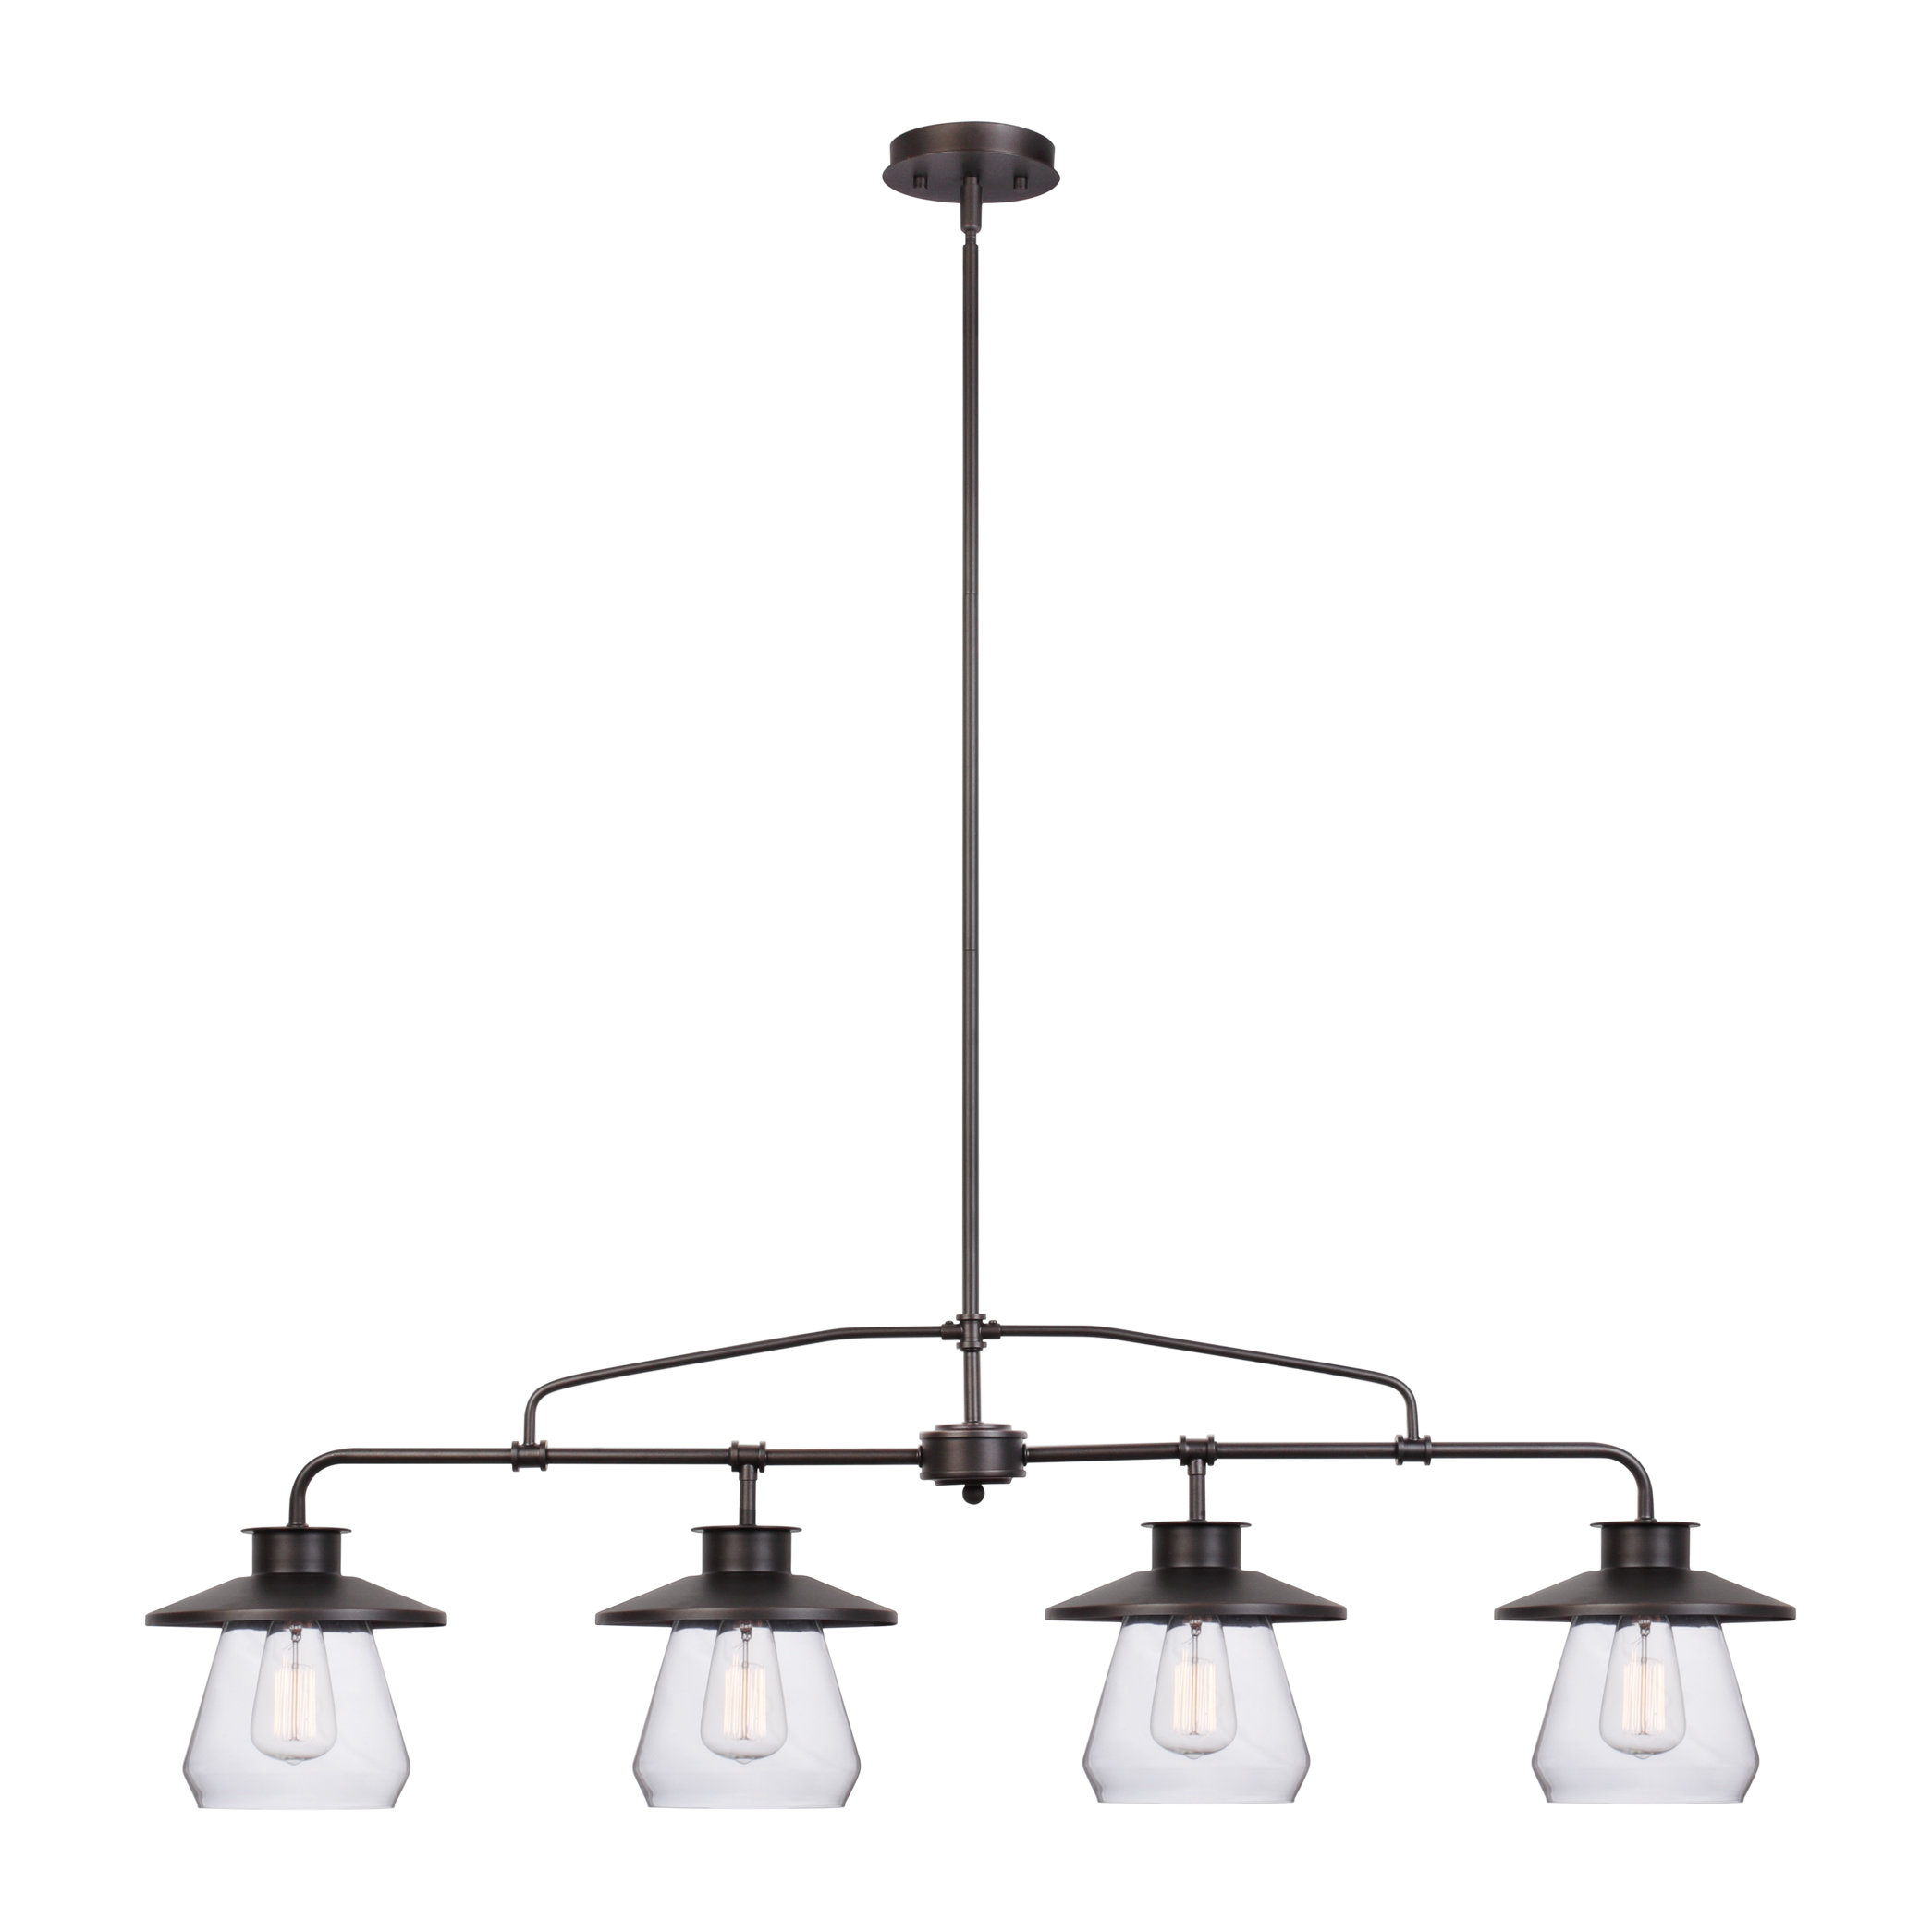 Modern Trent Austin Design Pendant Lighting | Allmodern Intended For Bryker 1 Light Single Bulb Pendants (View 17 of 30)